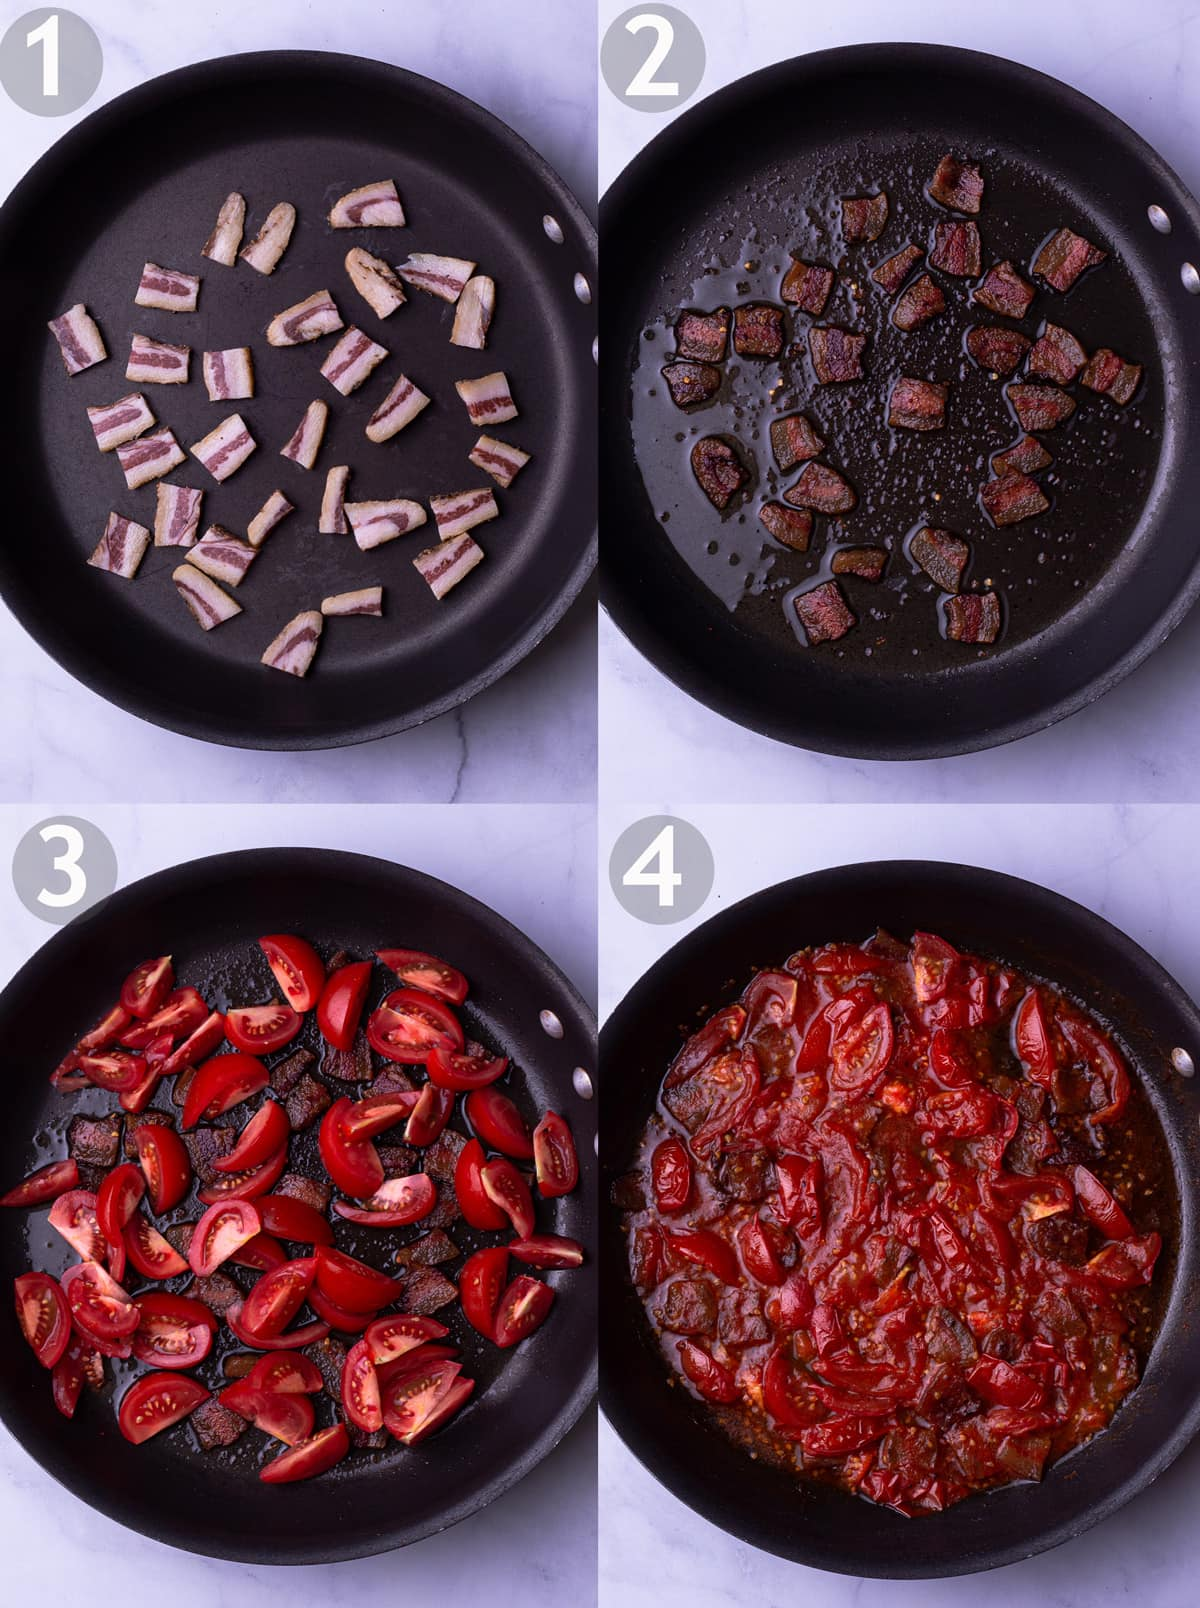 Step by step photos of making pasta sauce including rendering the guanciale, adding red pepper and adding and cooking down tomatoes.